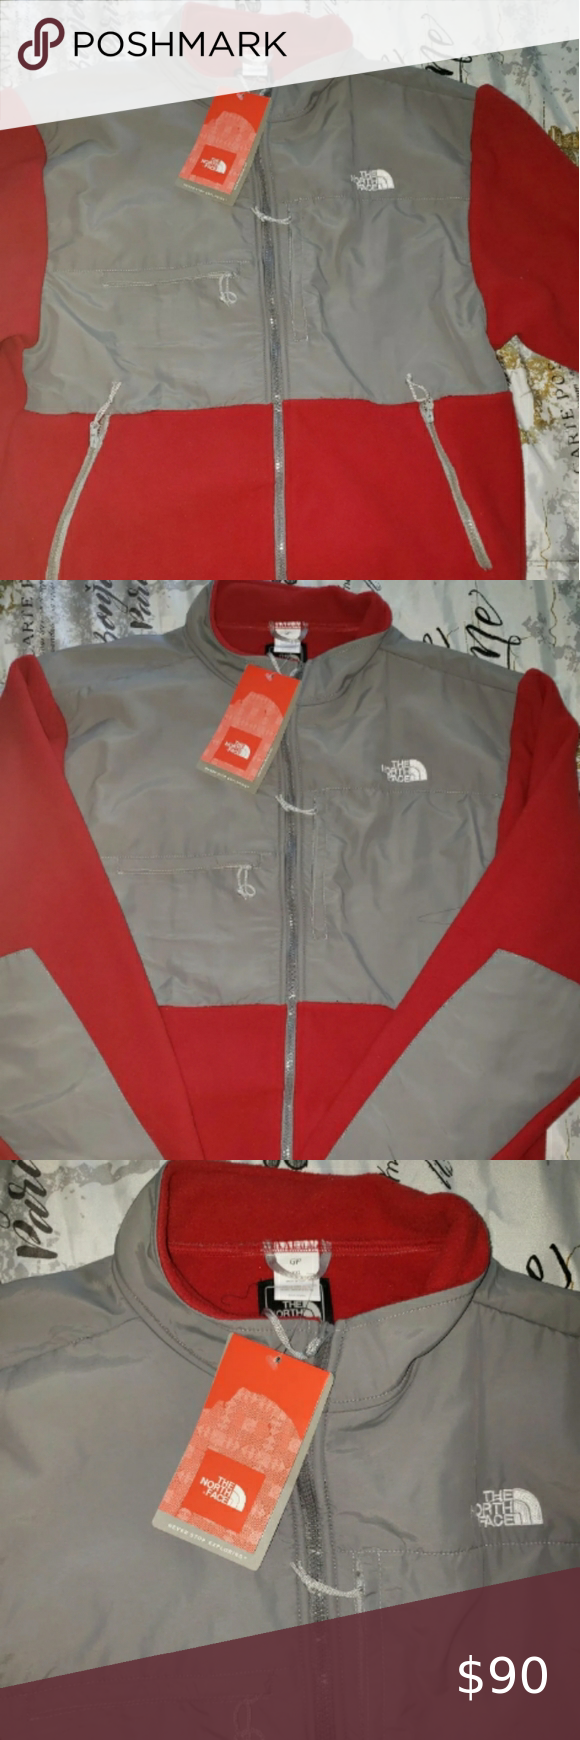 2x North Face Jacket New With Tags Red Gray Women S Plus Size North Face Jacket Doesn T Fit Me And I Can T Return North Face Jacket Jackets Jackets For Women [ 1740 x 580 Pixel ]